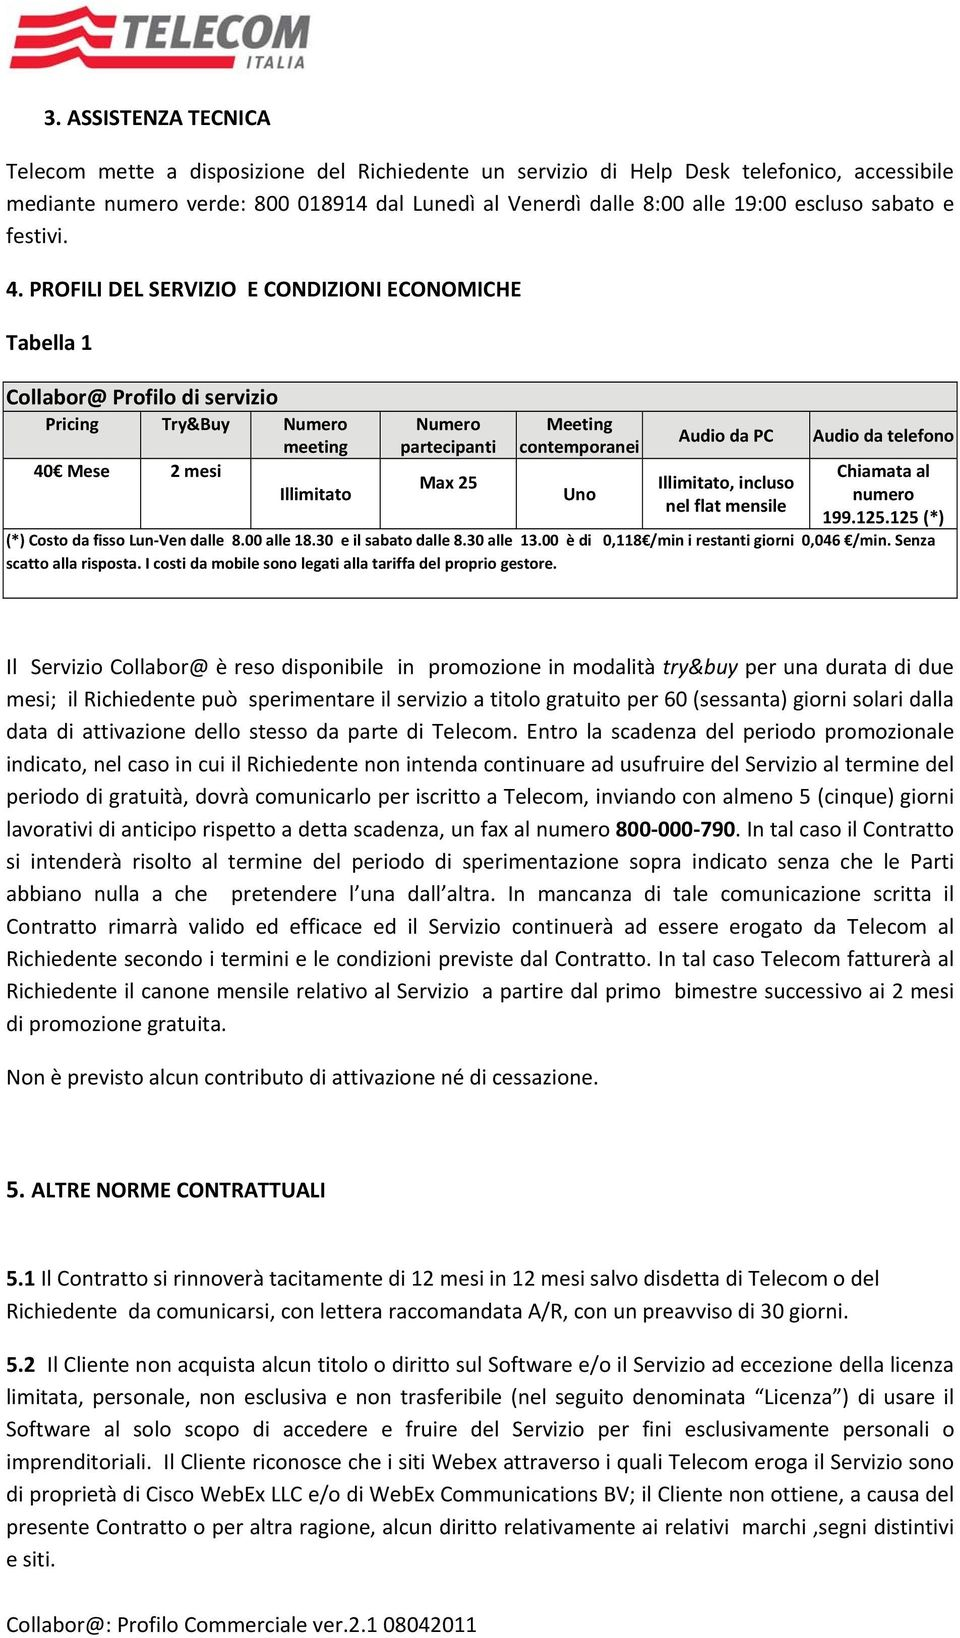 PROFILI DEL SERVIZIO E CONDIZIONI ECONOMICHE Tabella 1 Collabor@ Profilo di servizio Pricing Try&Buy Numero meeting 40 Mese 2 mesi Illimitato Numero partecipanti Max 25 Meeting contemporanei Uno